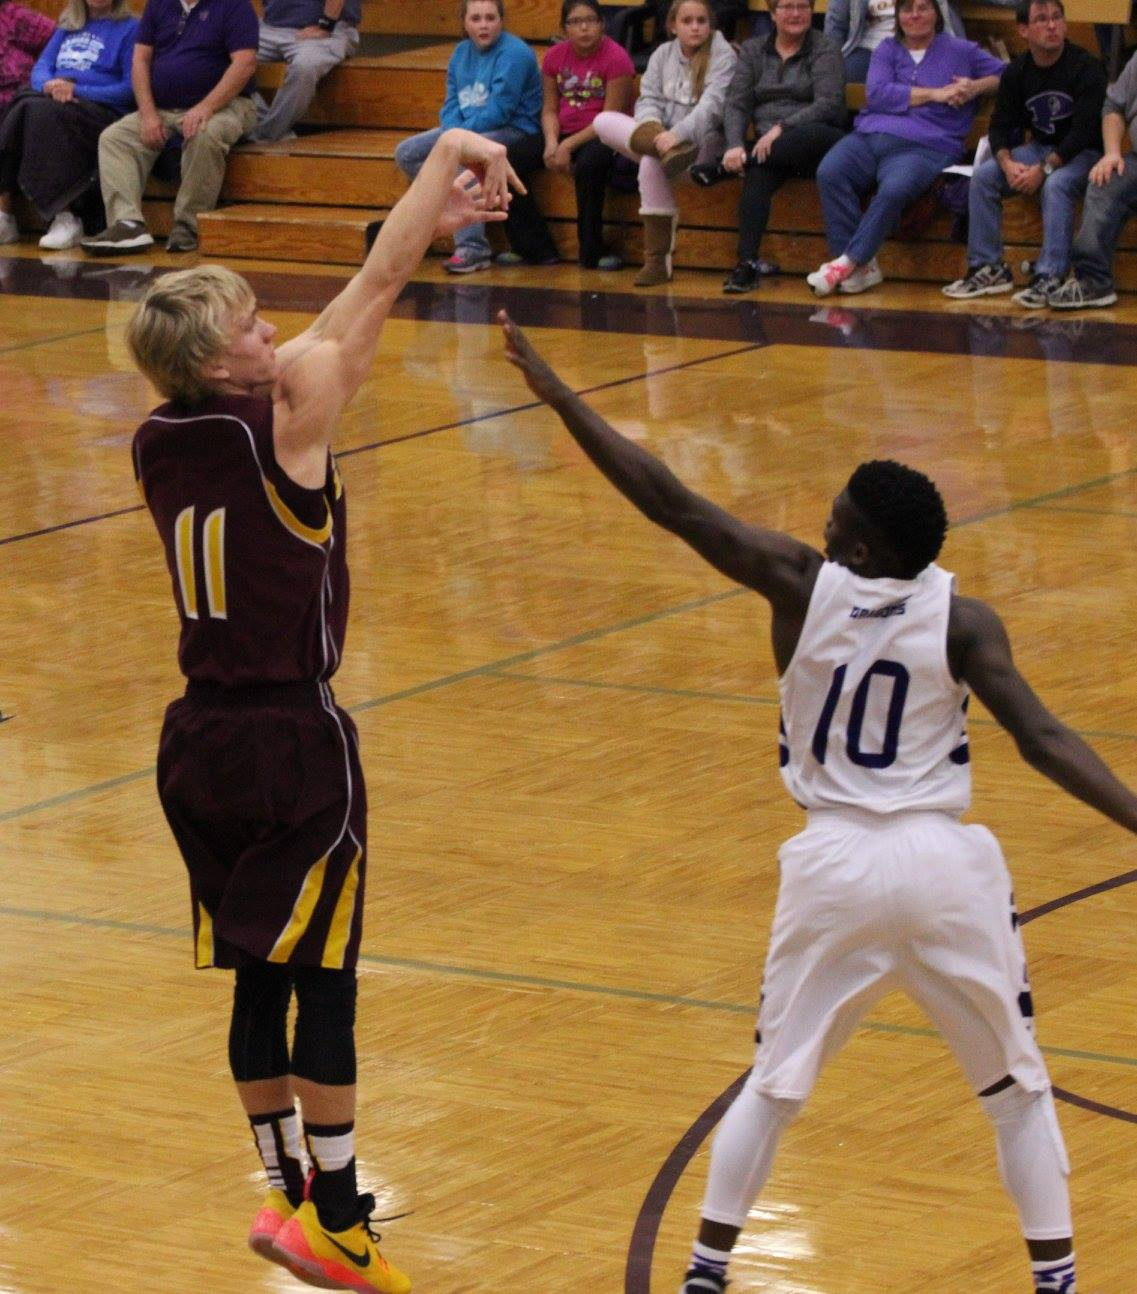 Laike Damman nails one of his four 3's vs. Pittsburg on Tuesday. PHOTO BY JOYCE KOVACIC